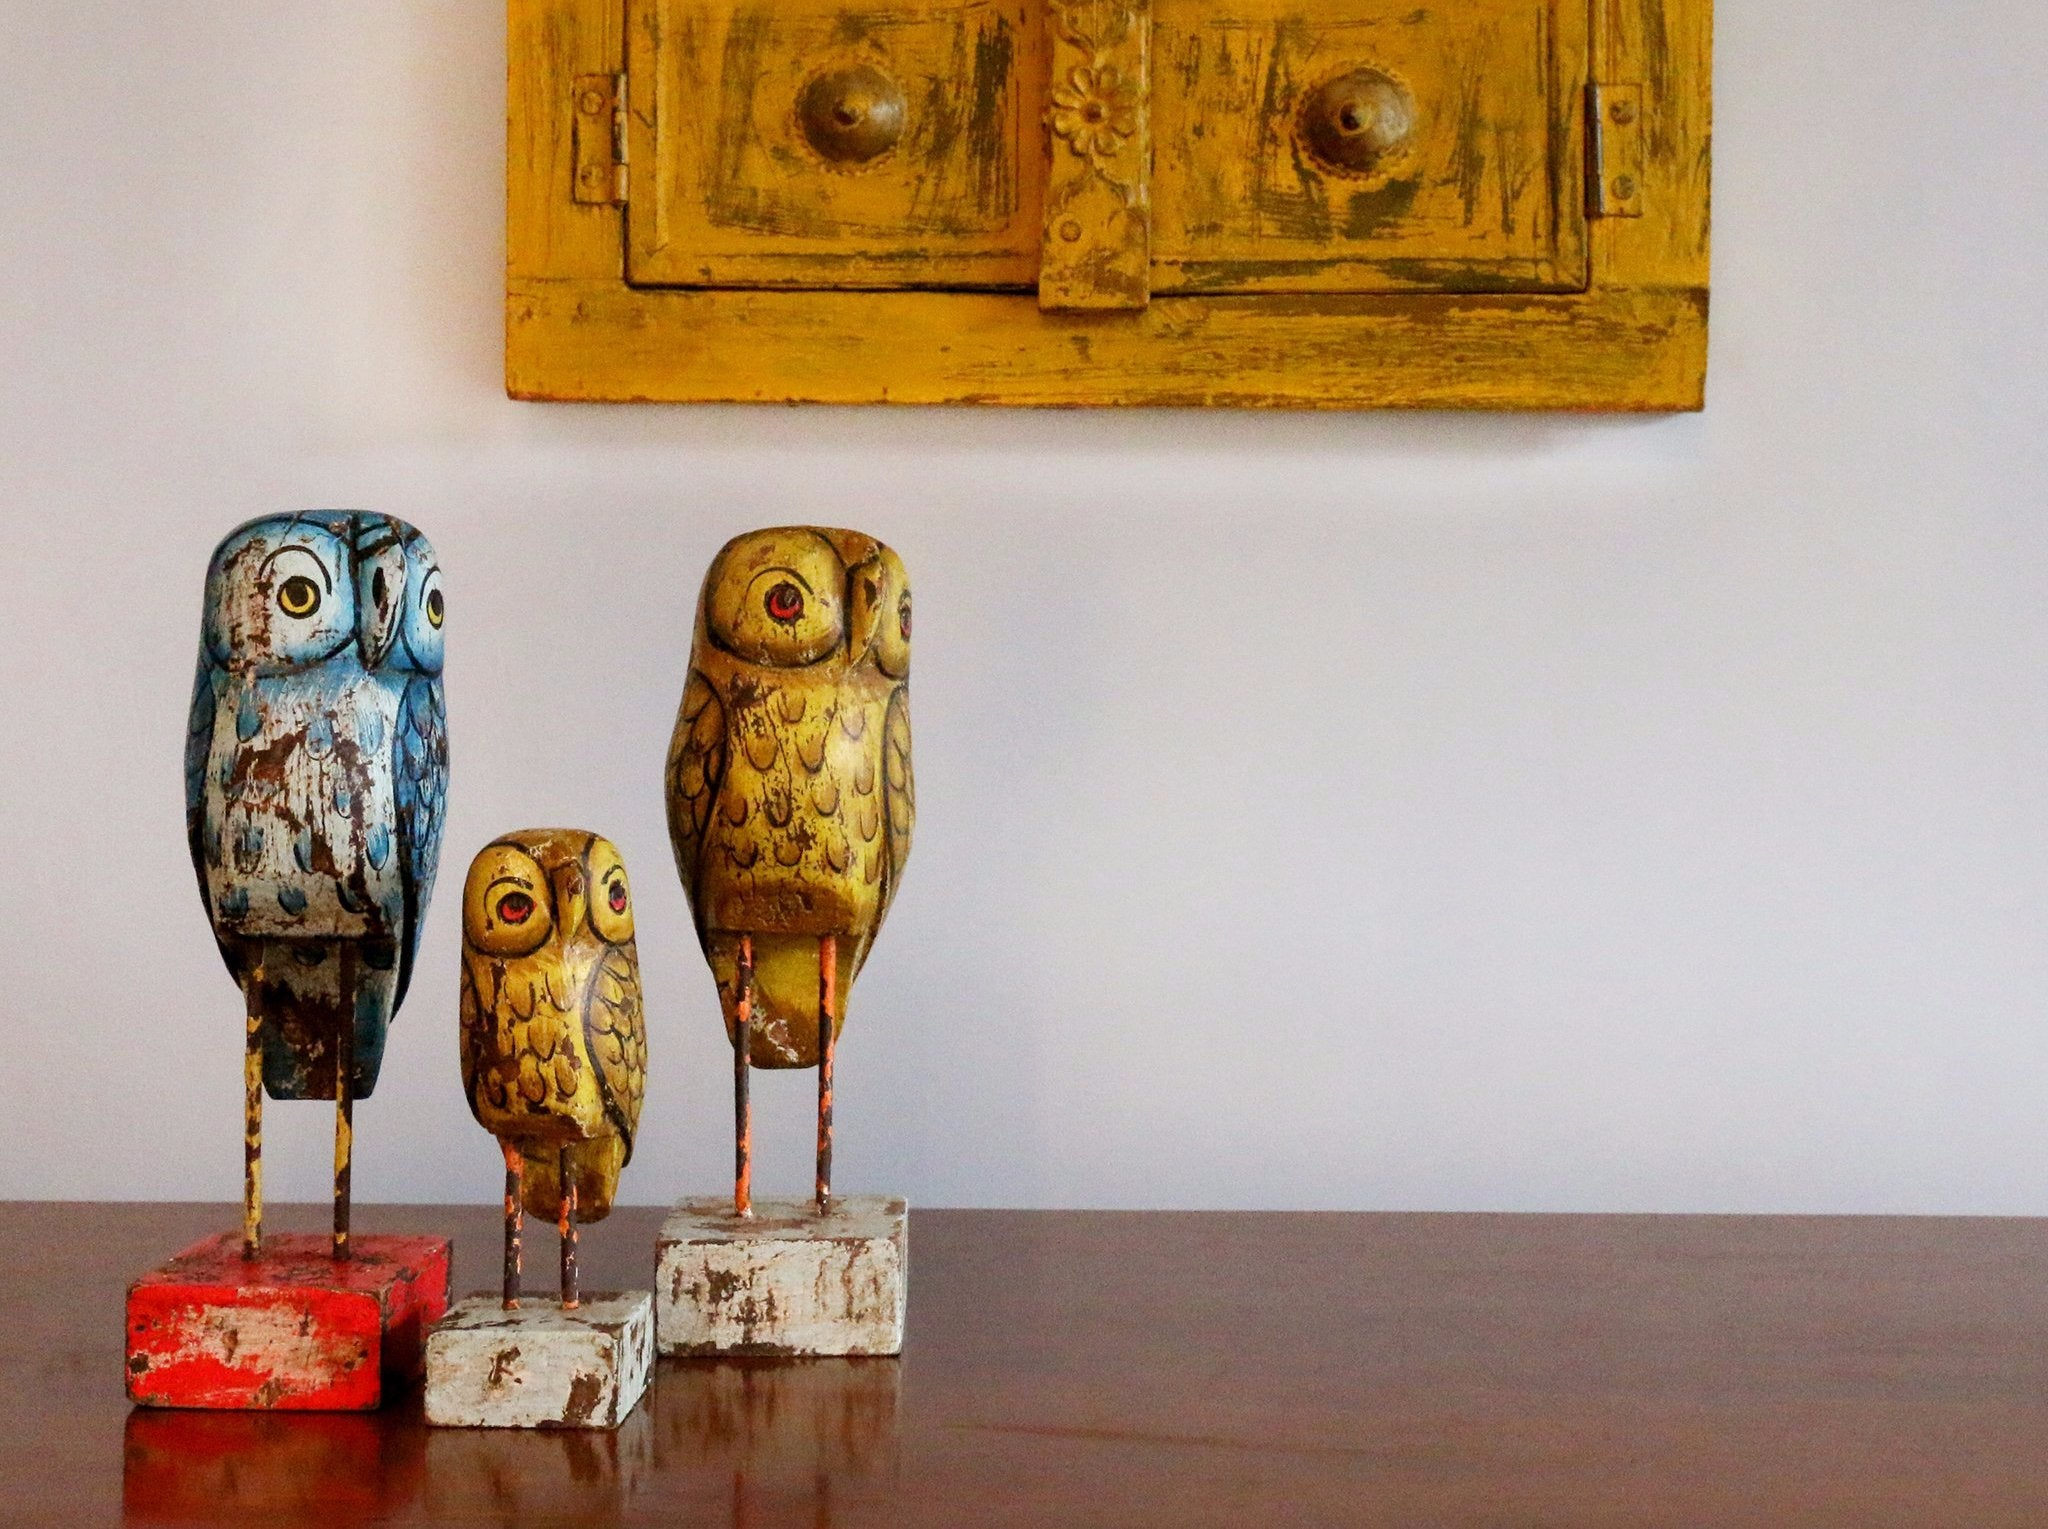 reclaimed wood set of 3 owls, blue, yellow and yellow with a yellow window in the background